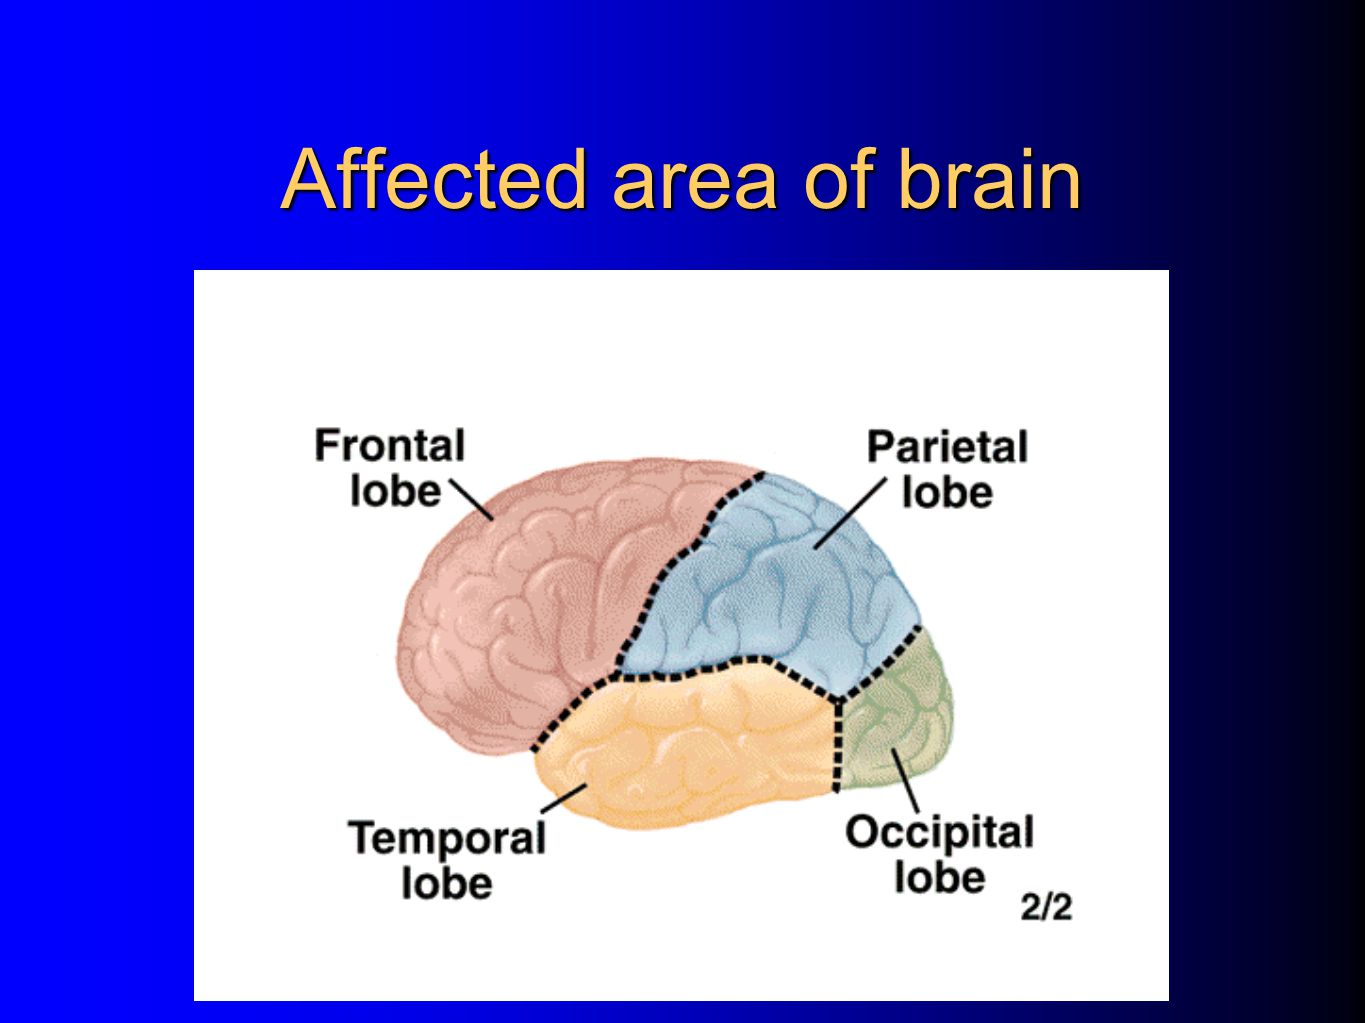 Affected area of brain